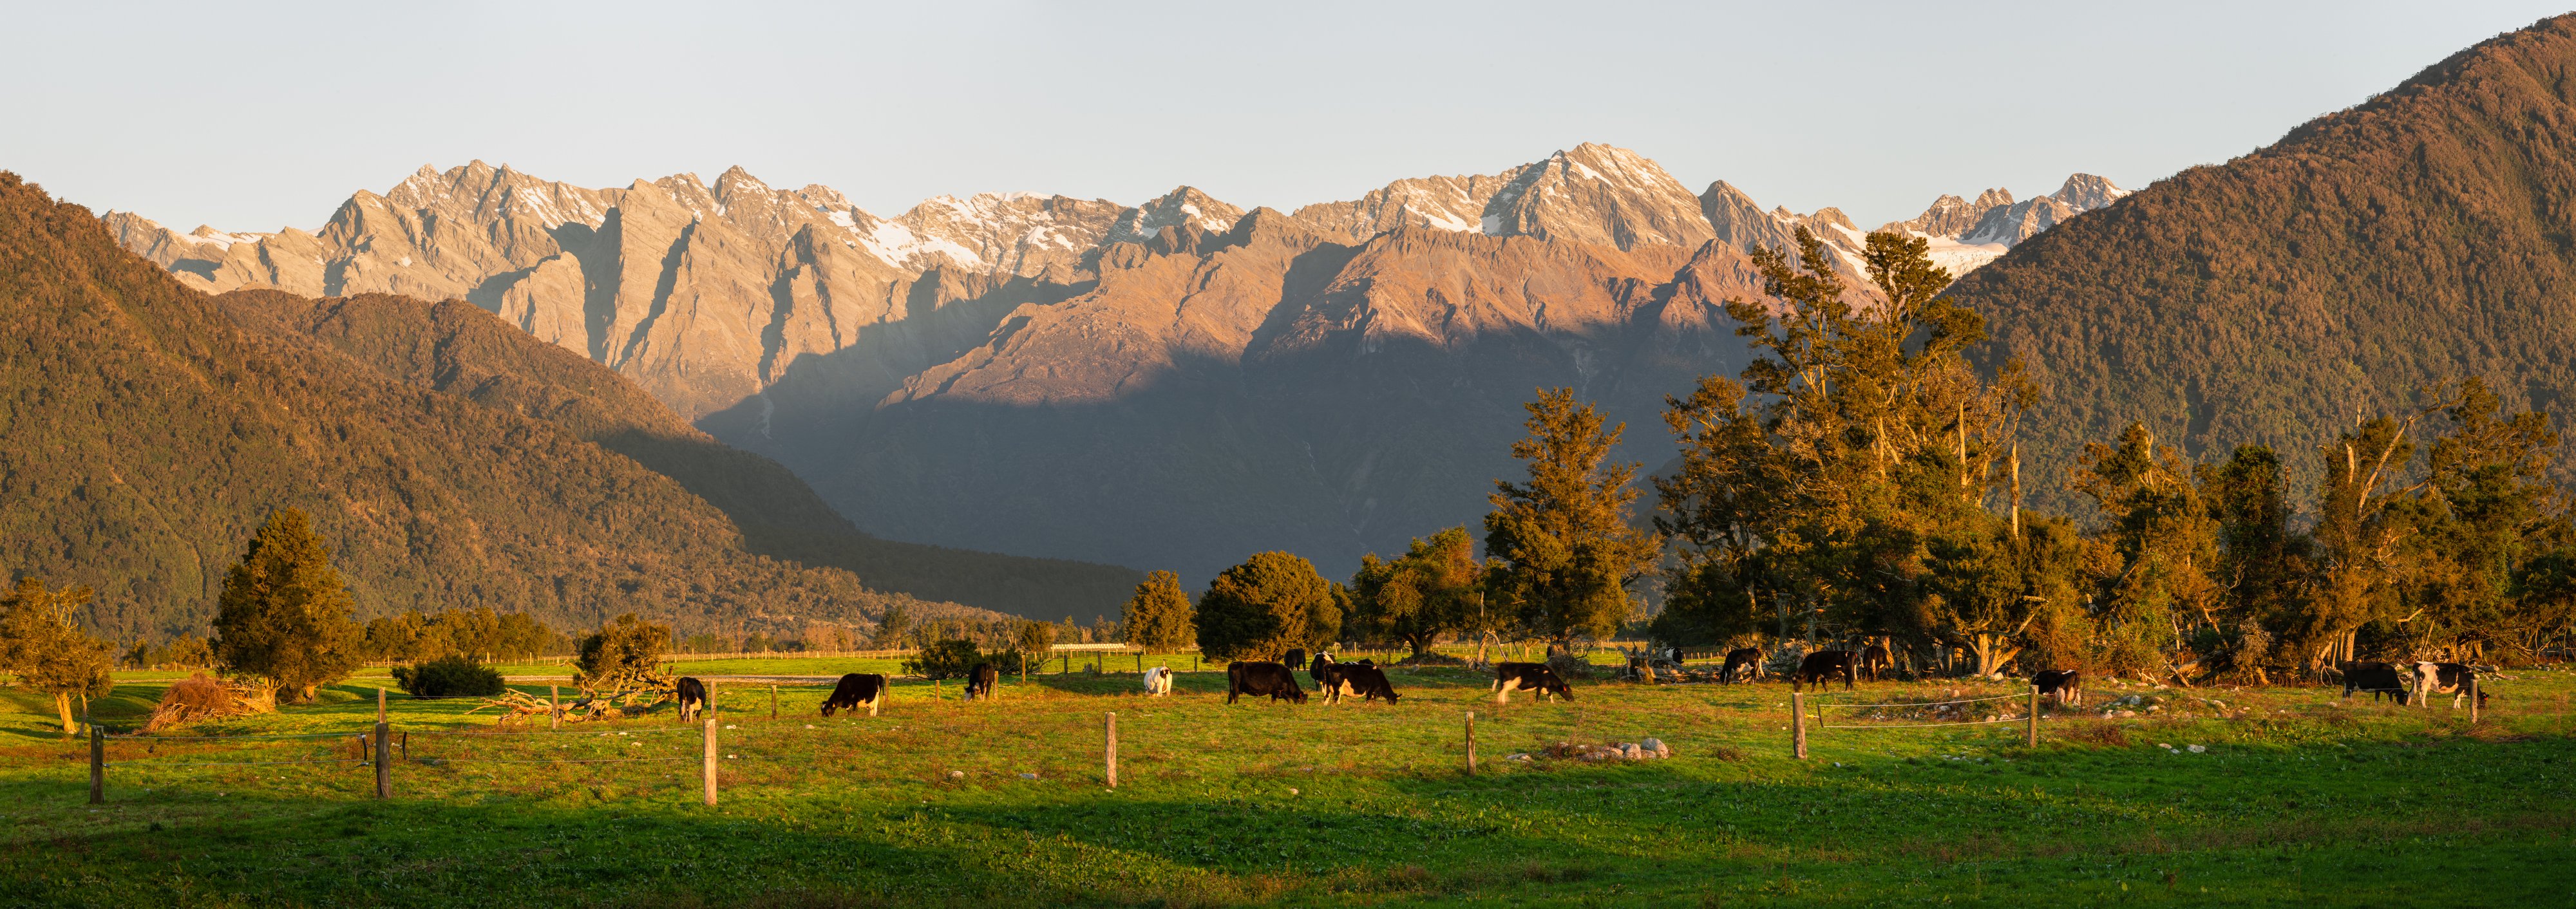 Cattle are seen against the background of the alps